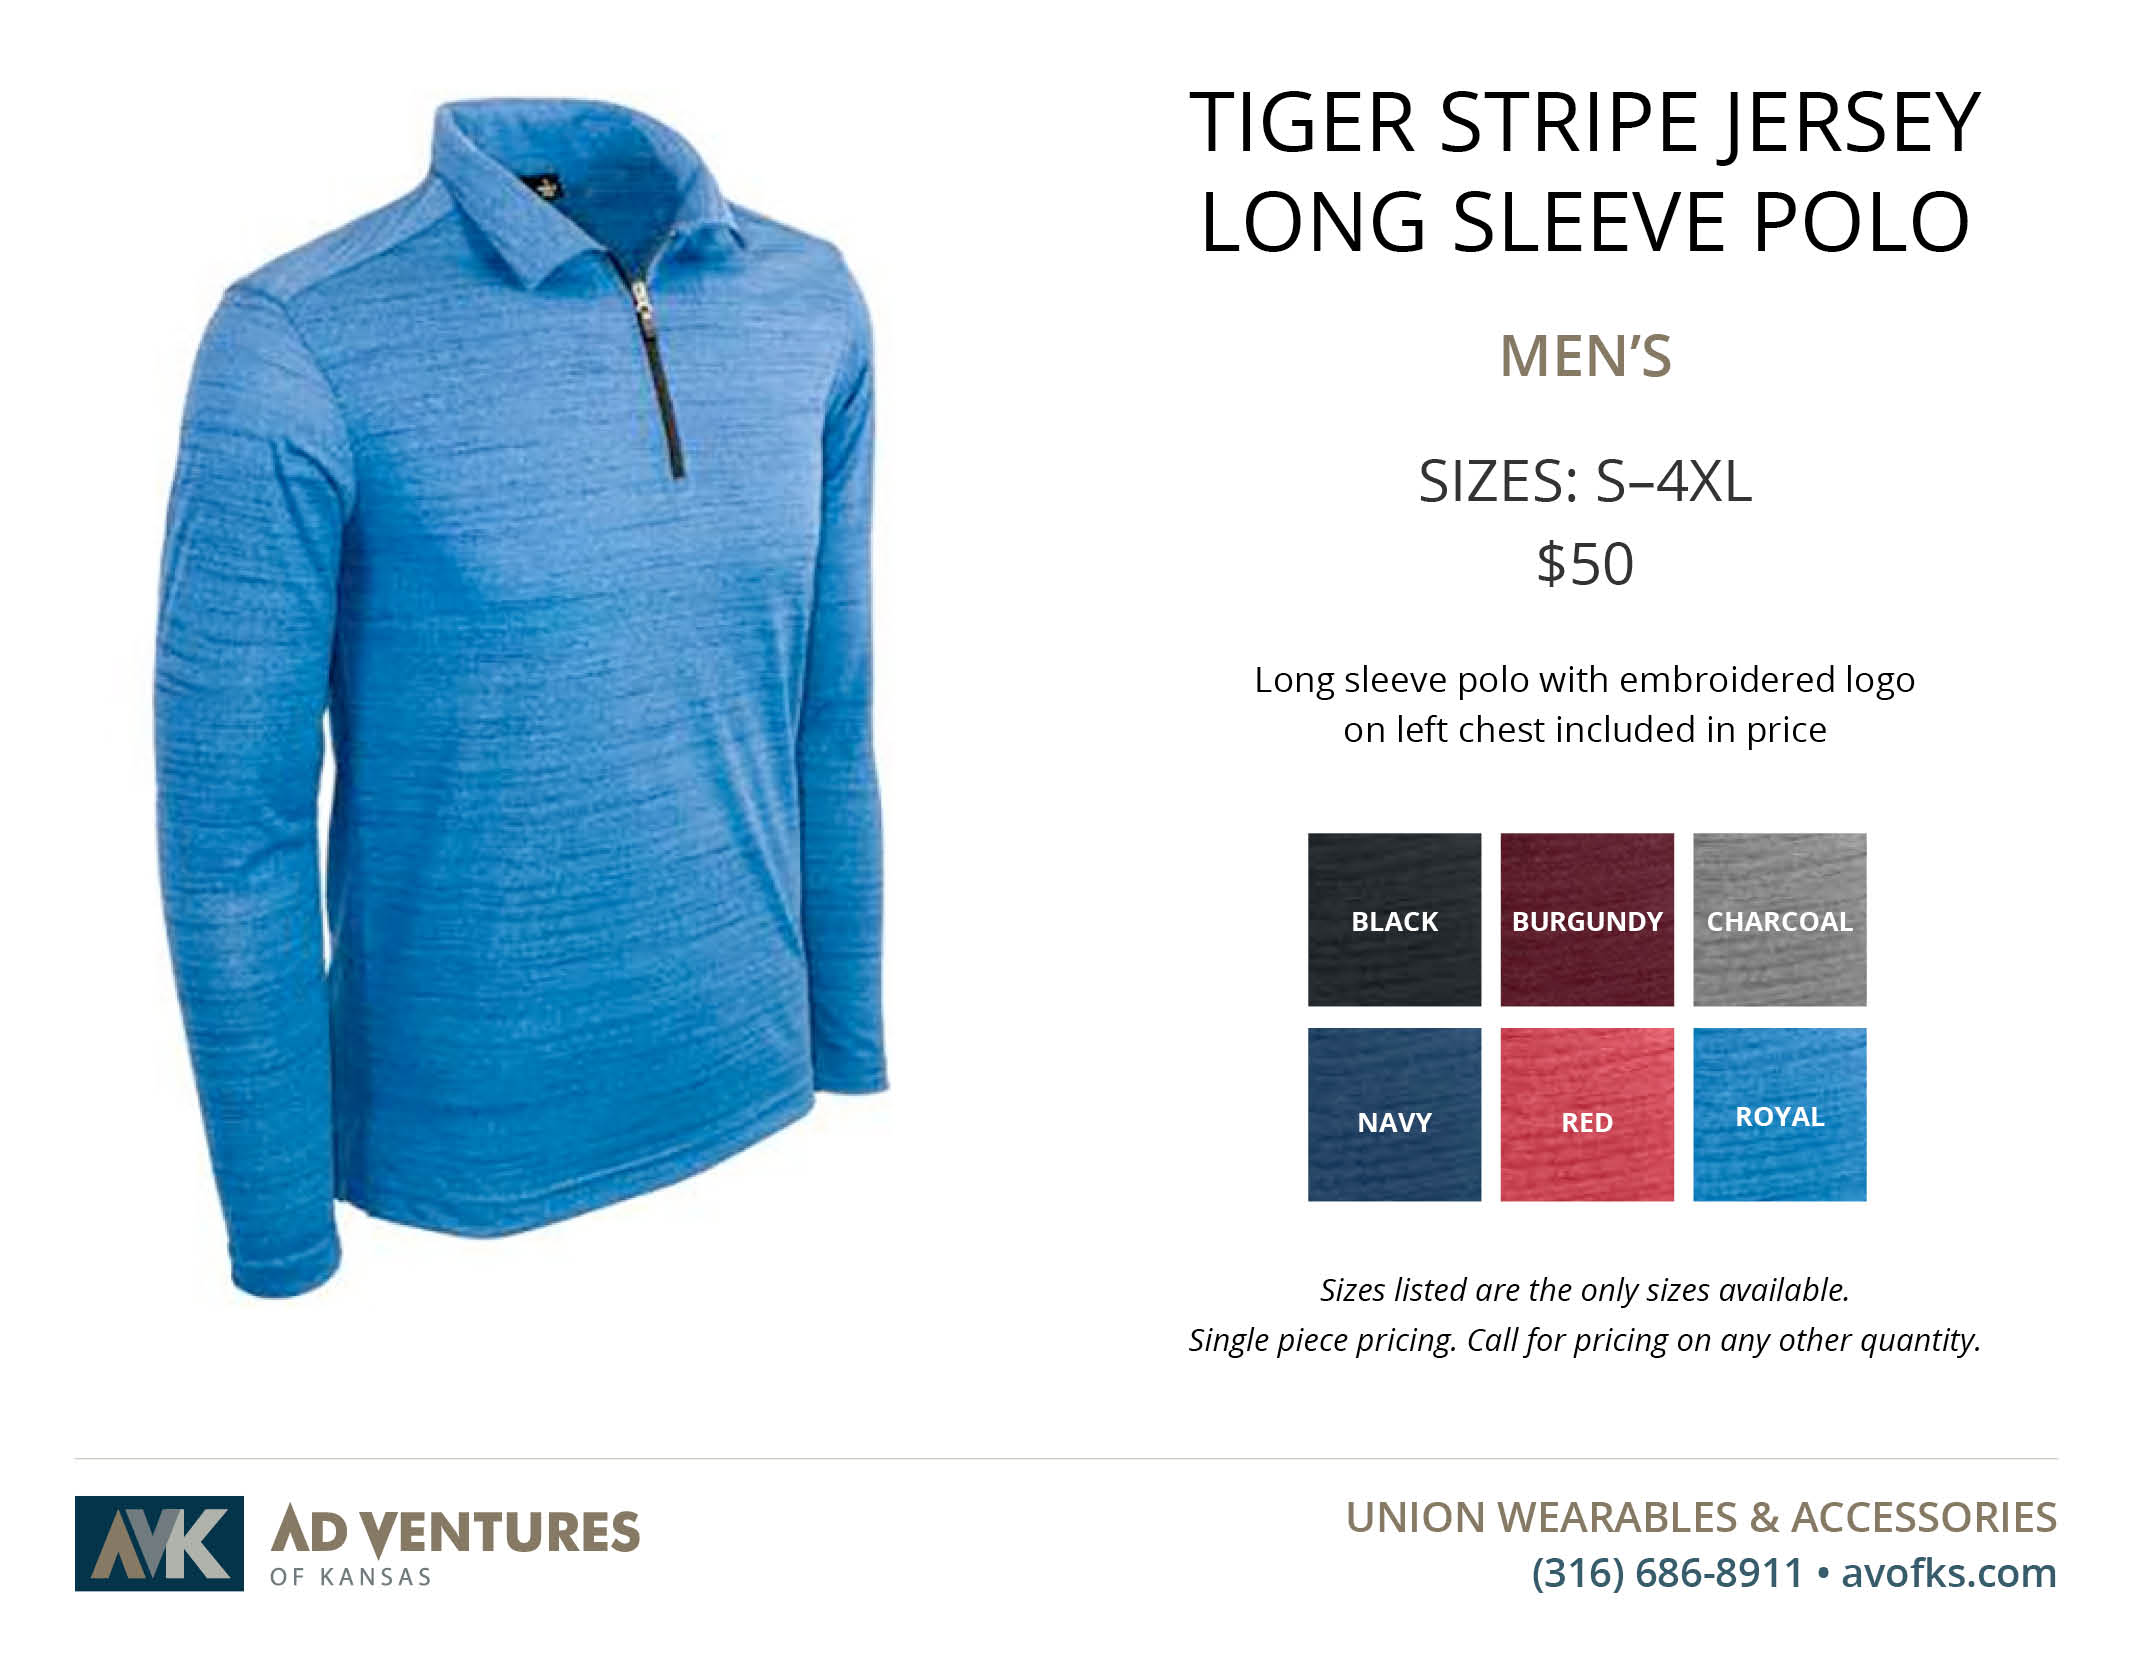 mens tiger stripe jersey long sleeve polo